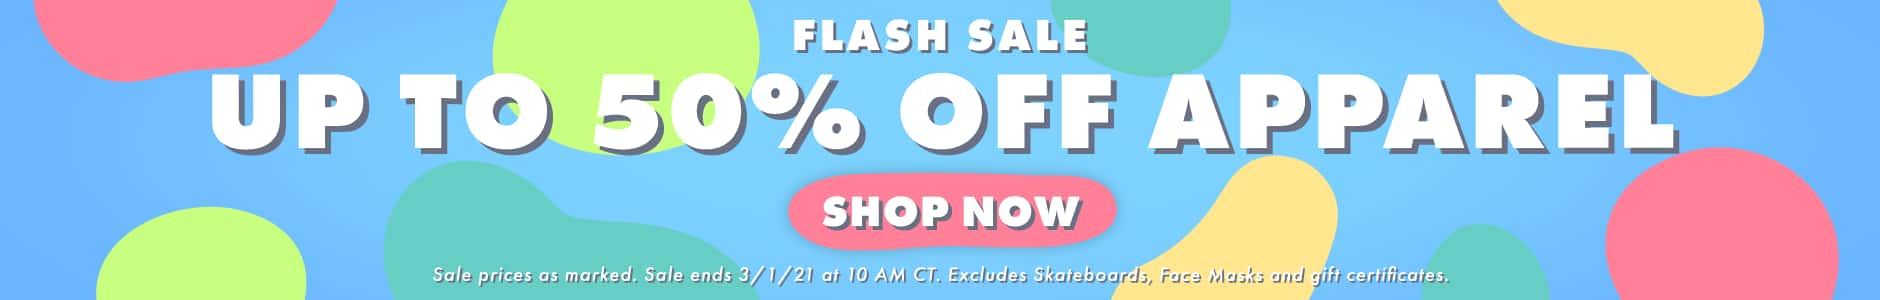 FLASH SALE: Up to 50% Off Apparel